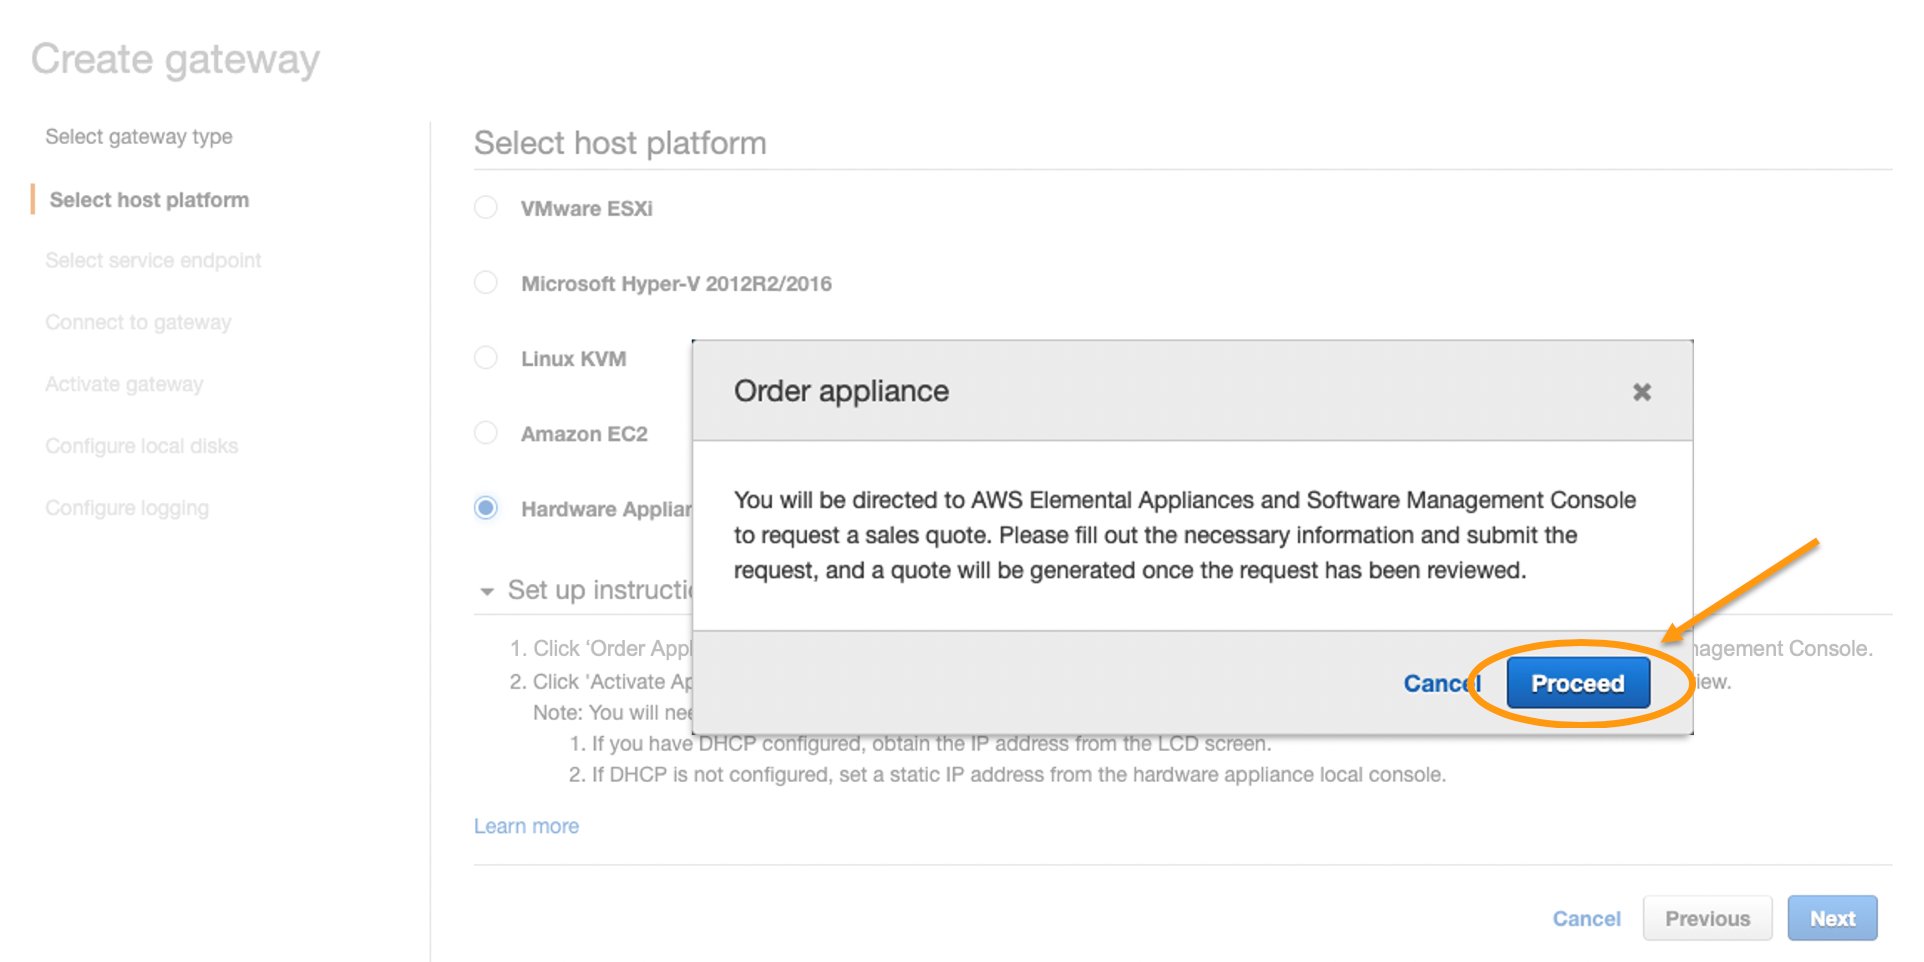 Click to proceed through the pop-up message informing you that you are being directed to the AWS Elemental Appliances and Software Management console